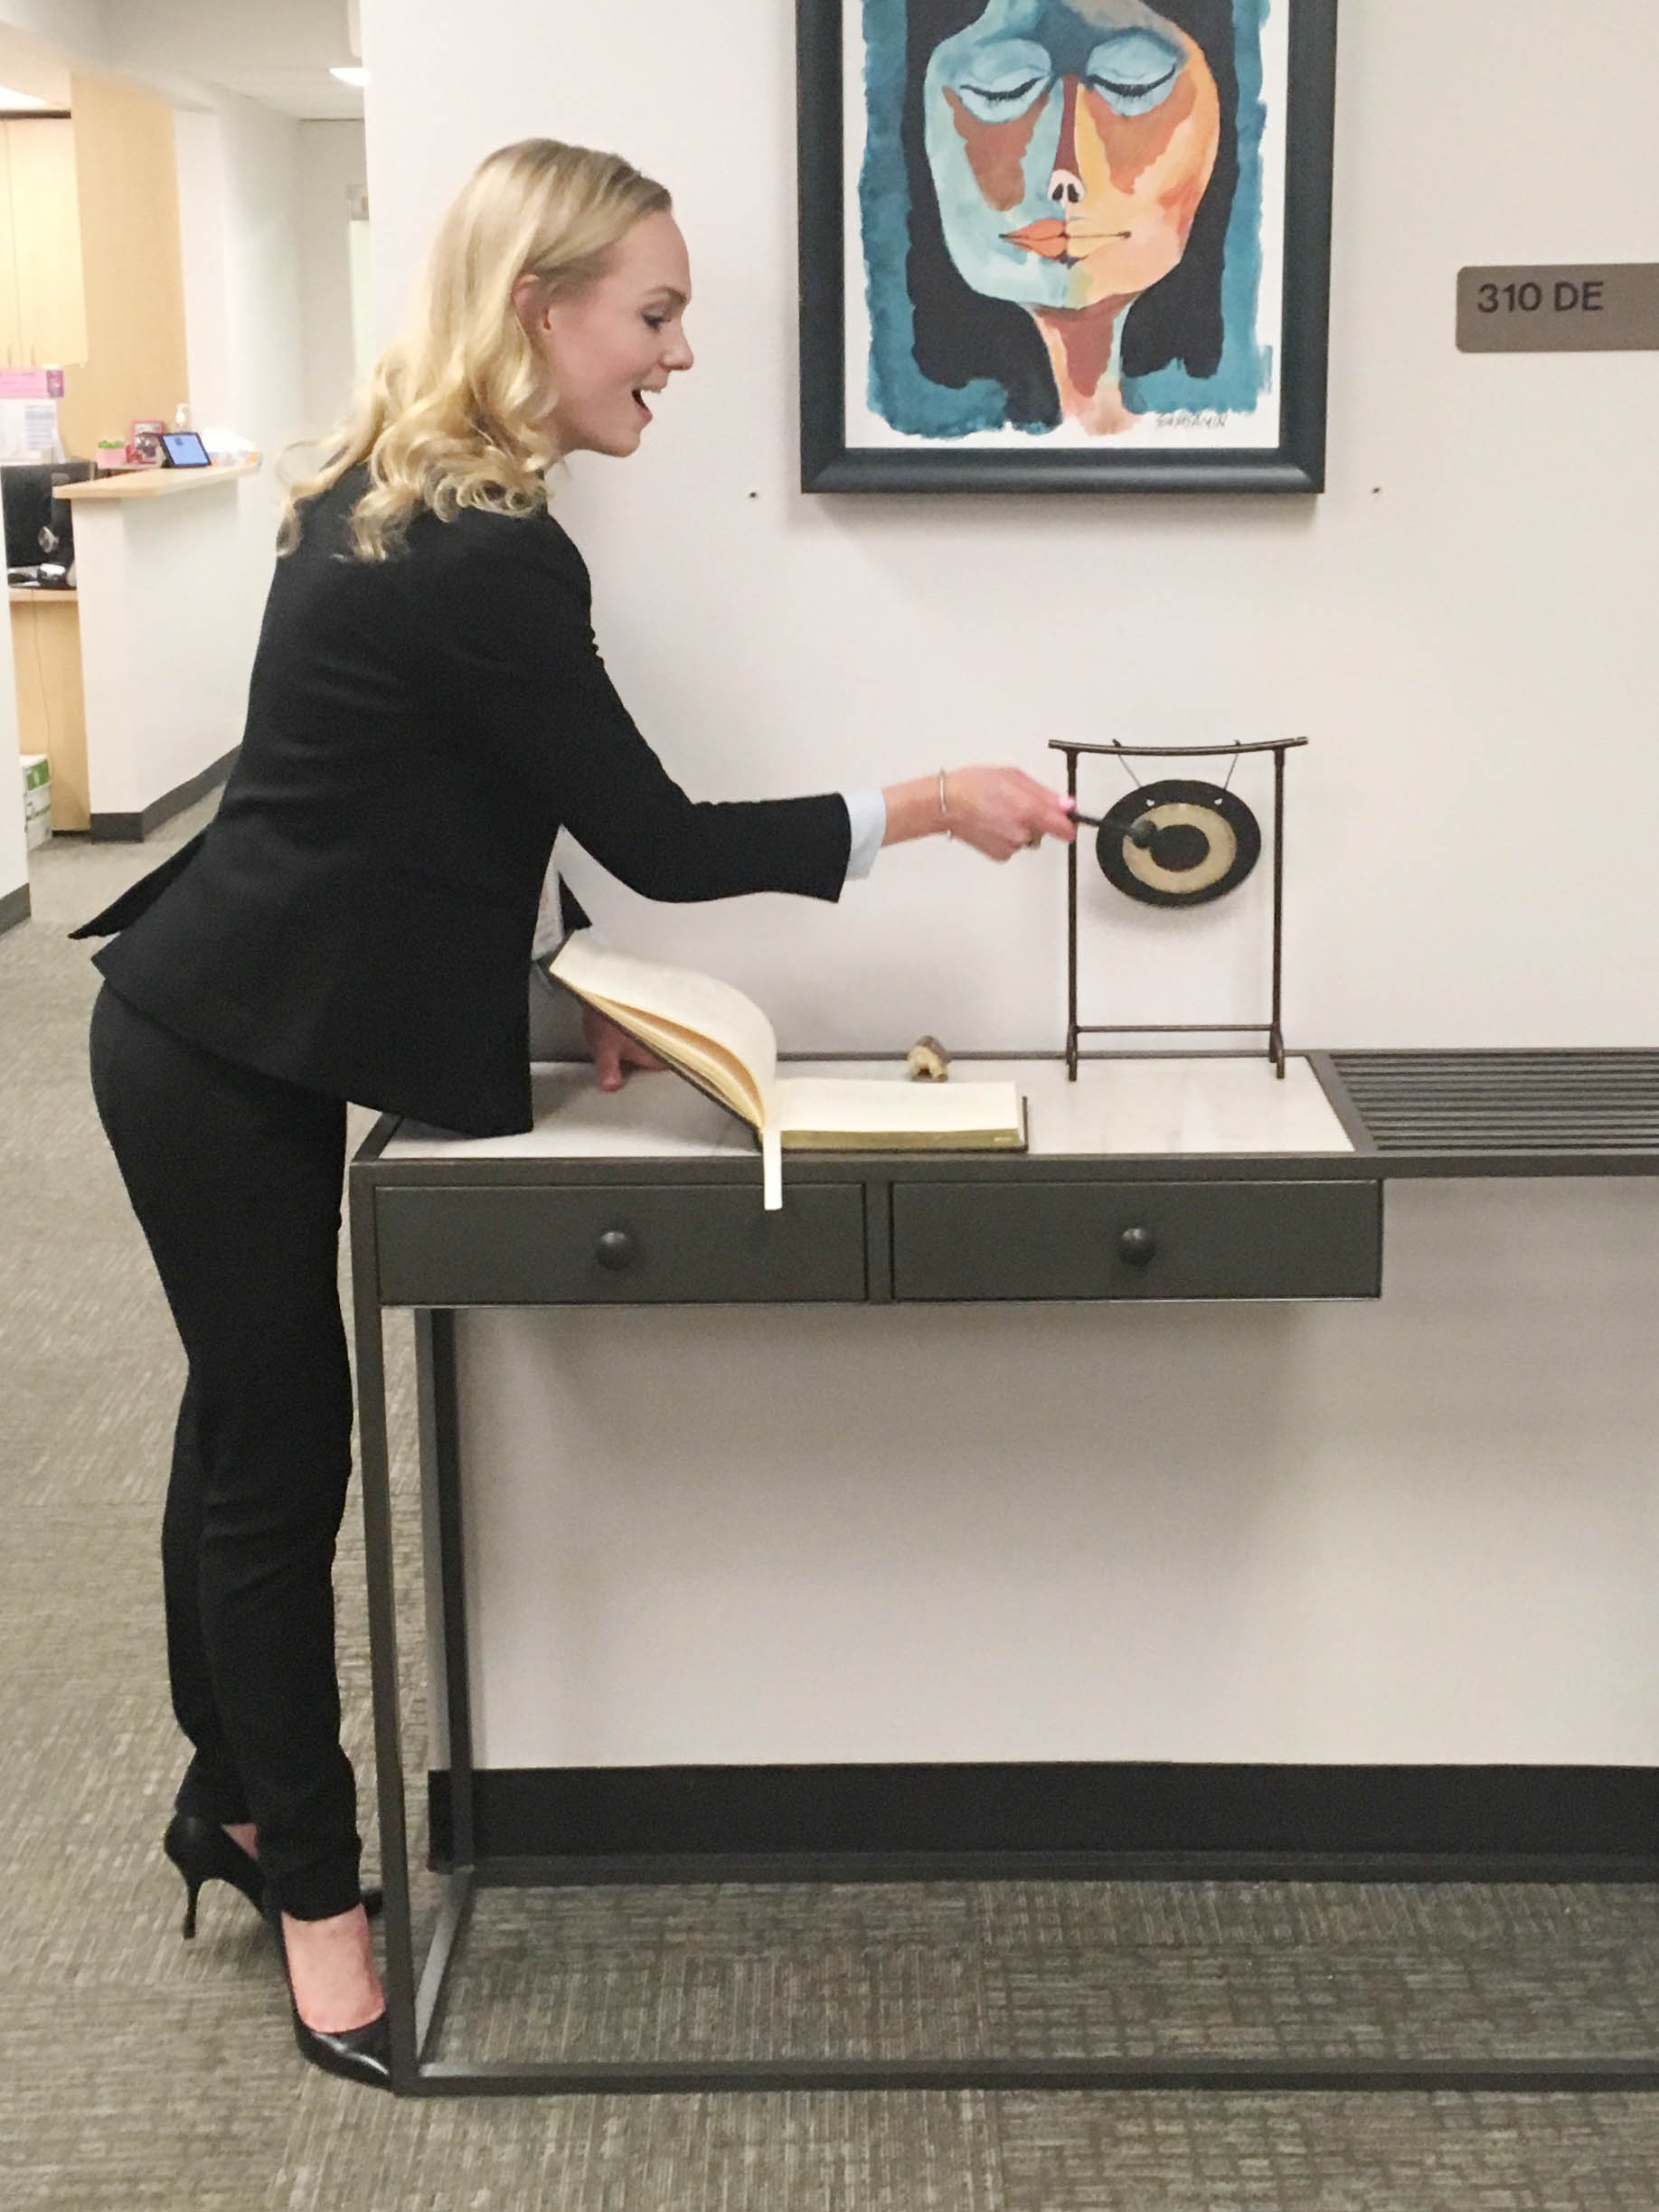 Hadley hits the celebratory gong in the Center for Medical Ethics and Health Policy at Baylor College of Medicine after successfully defending her dissertation.